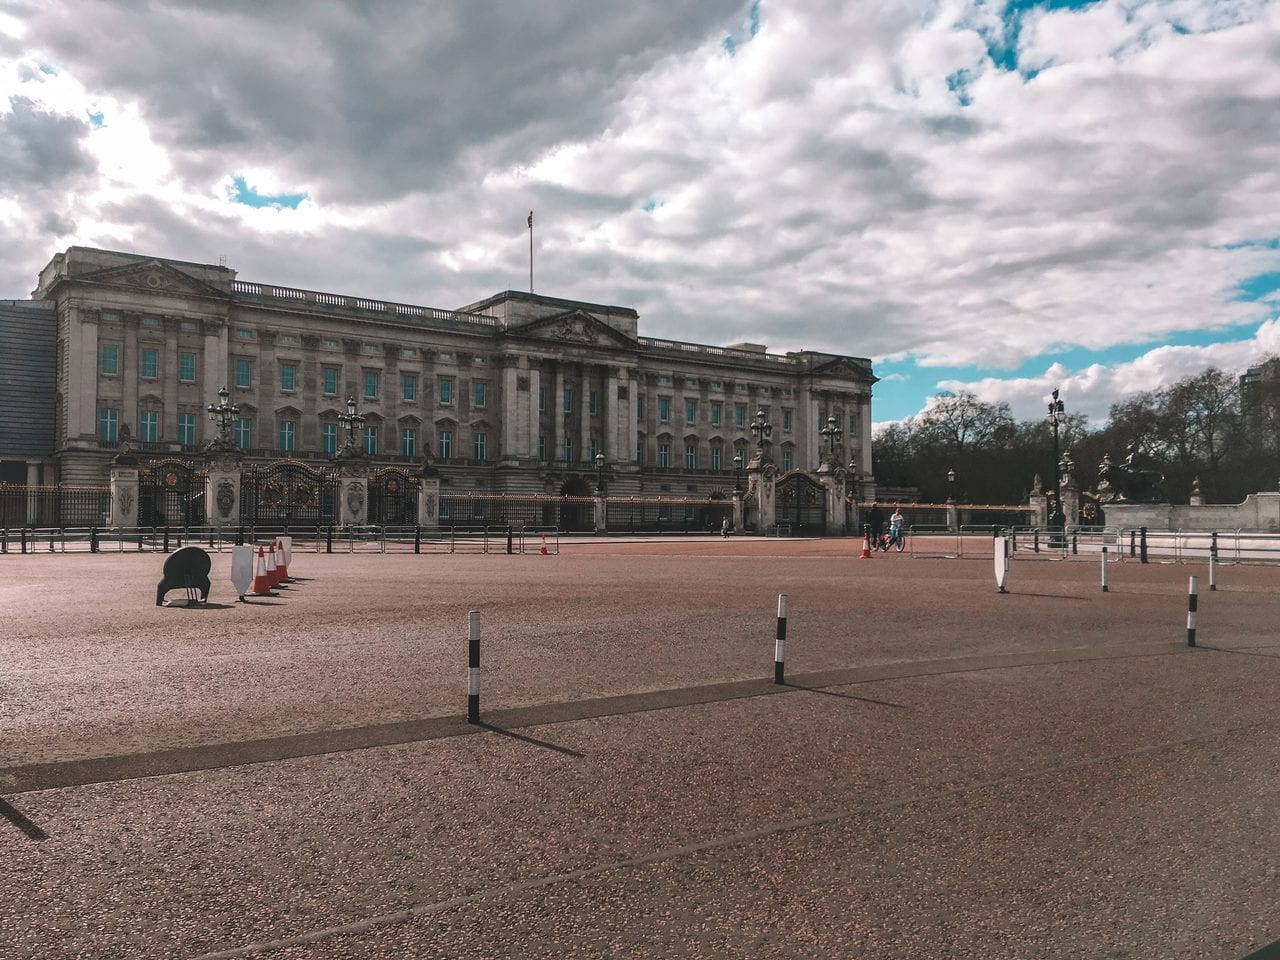 Buckingham Palace during the April 2020 lockdown